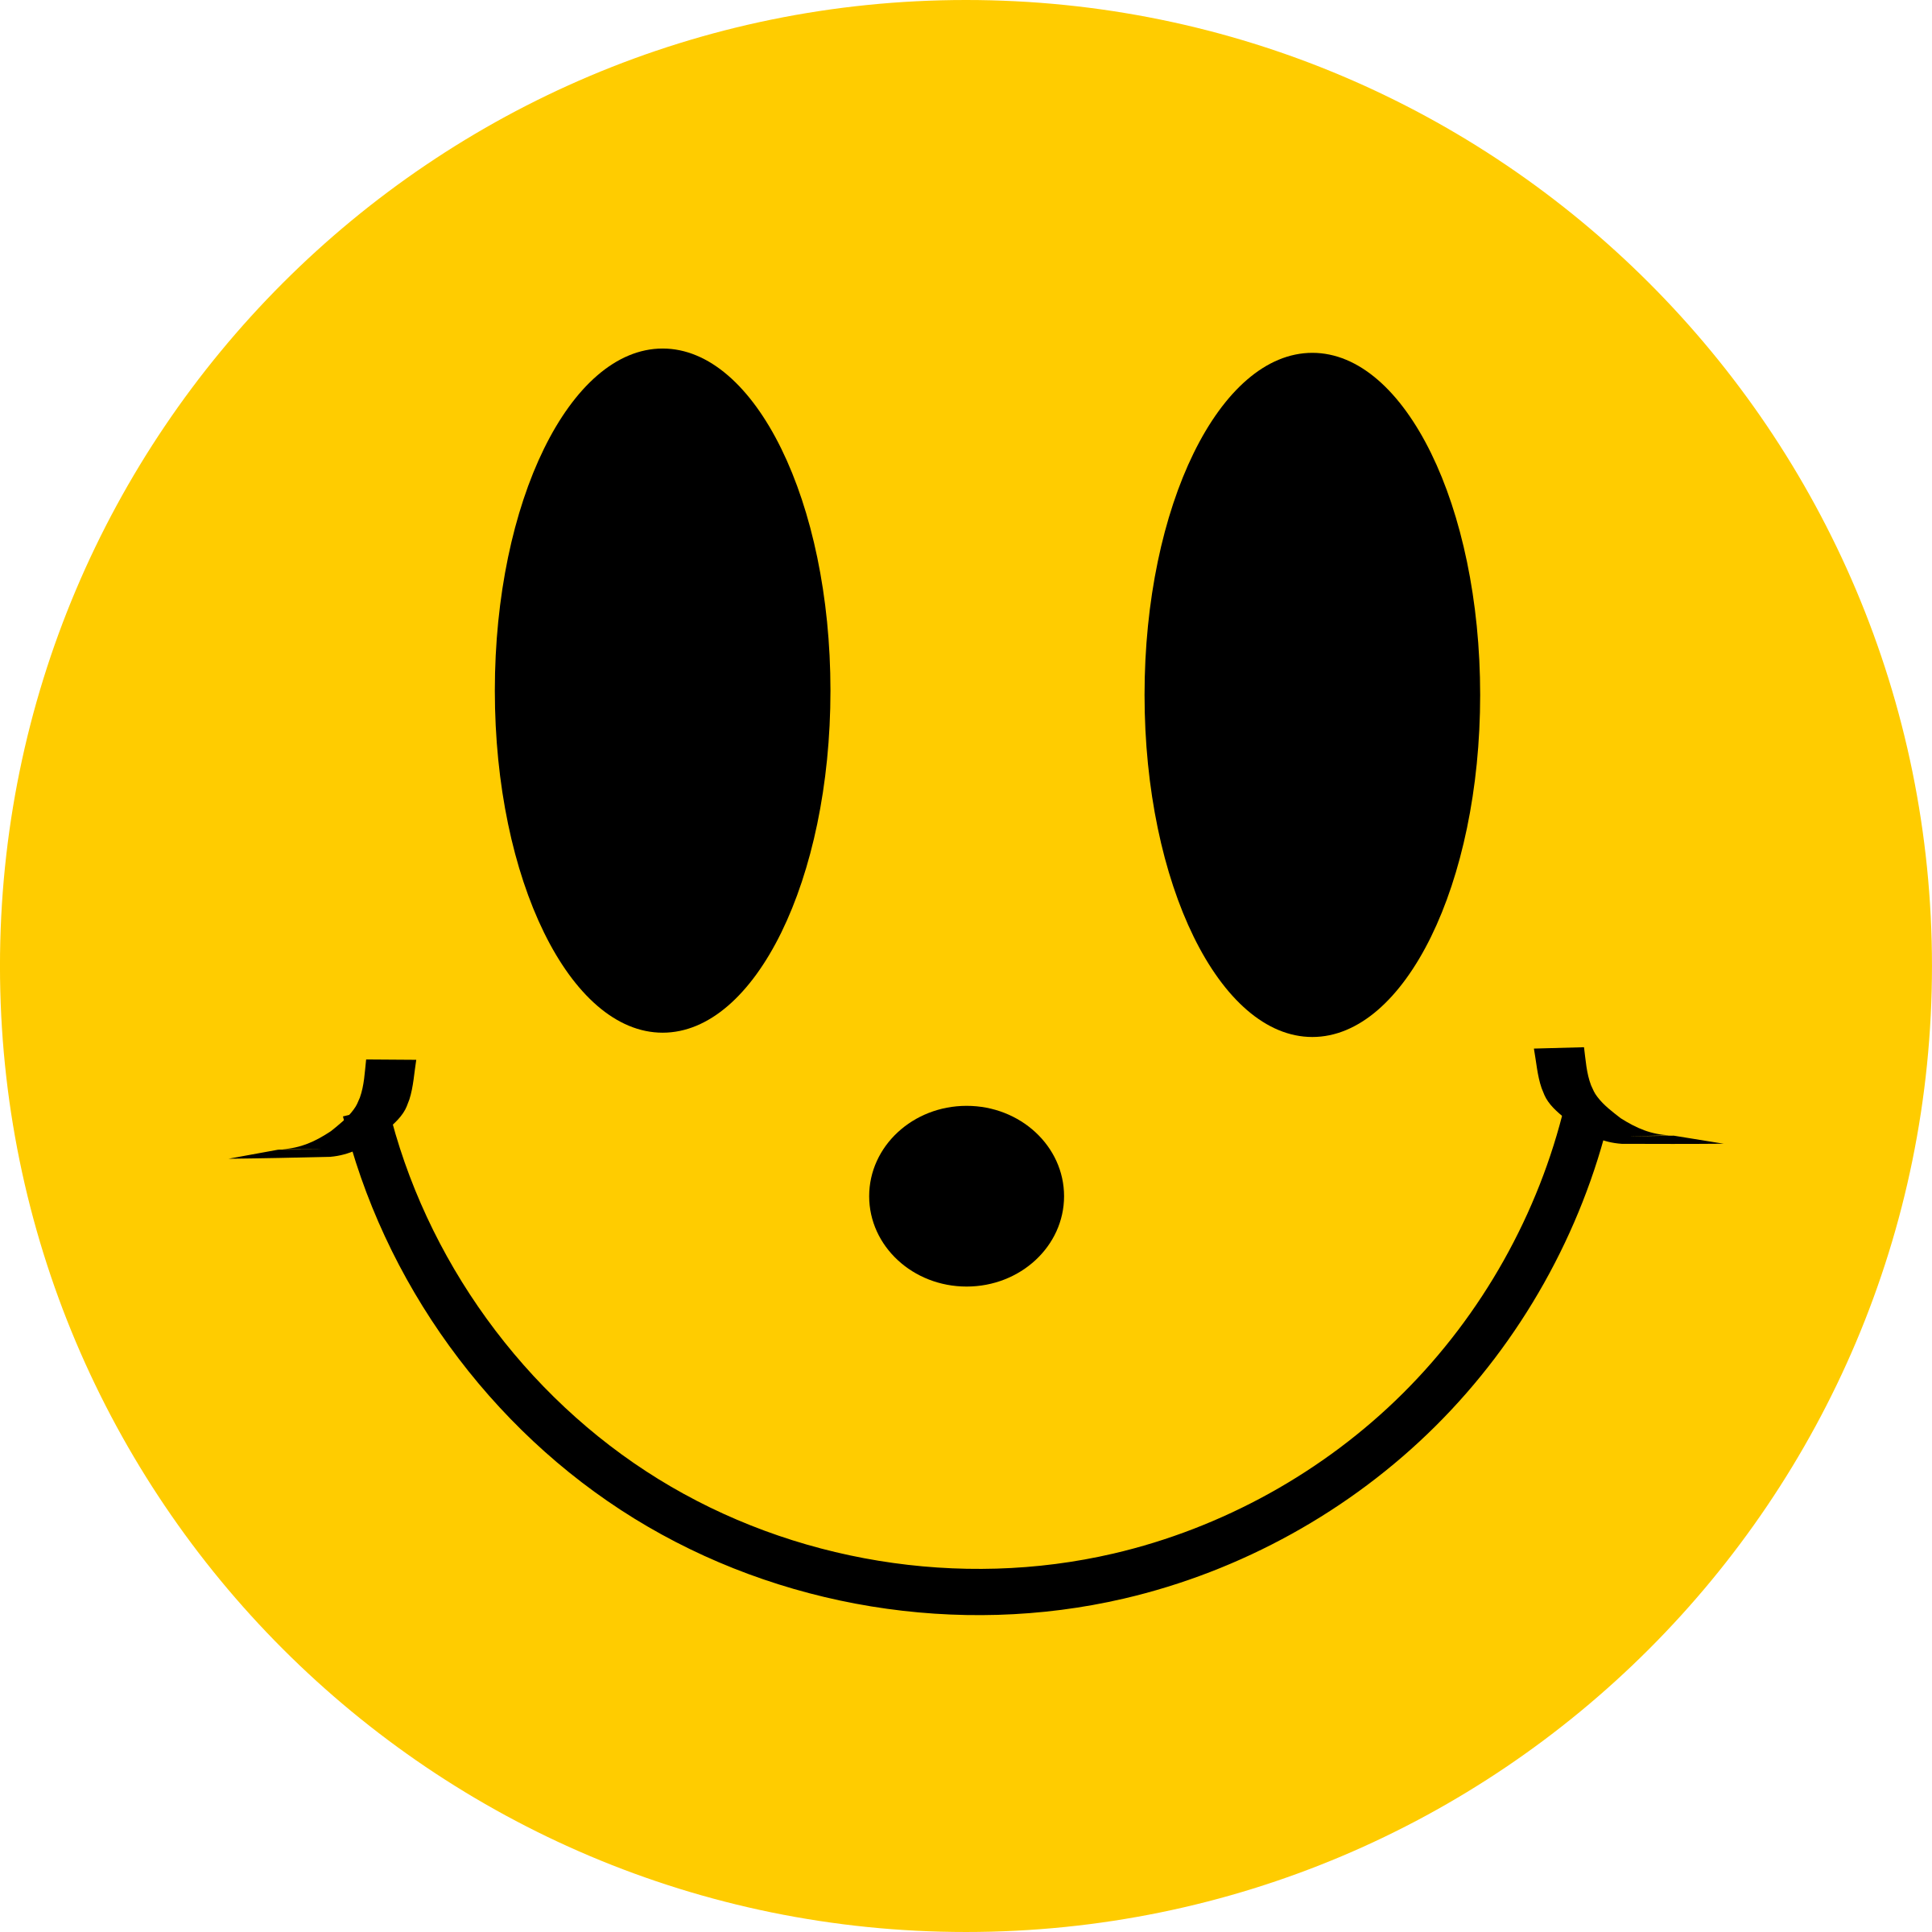 Smiley Face Png | Free download on ClipArtMag